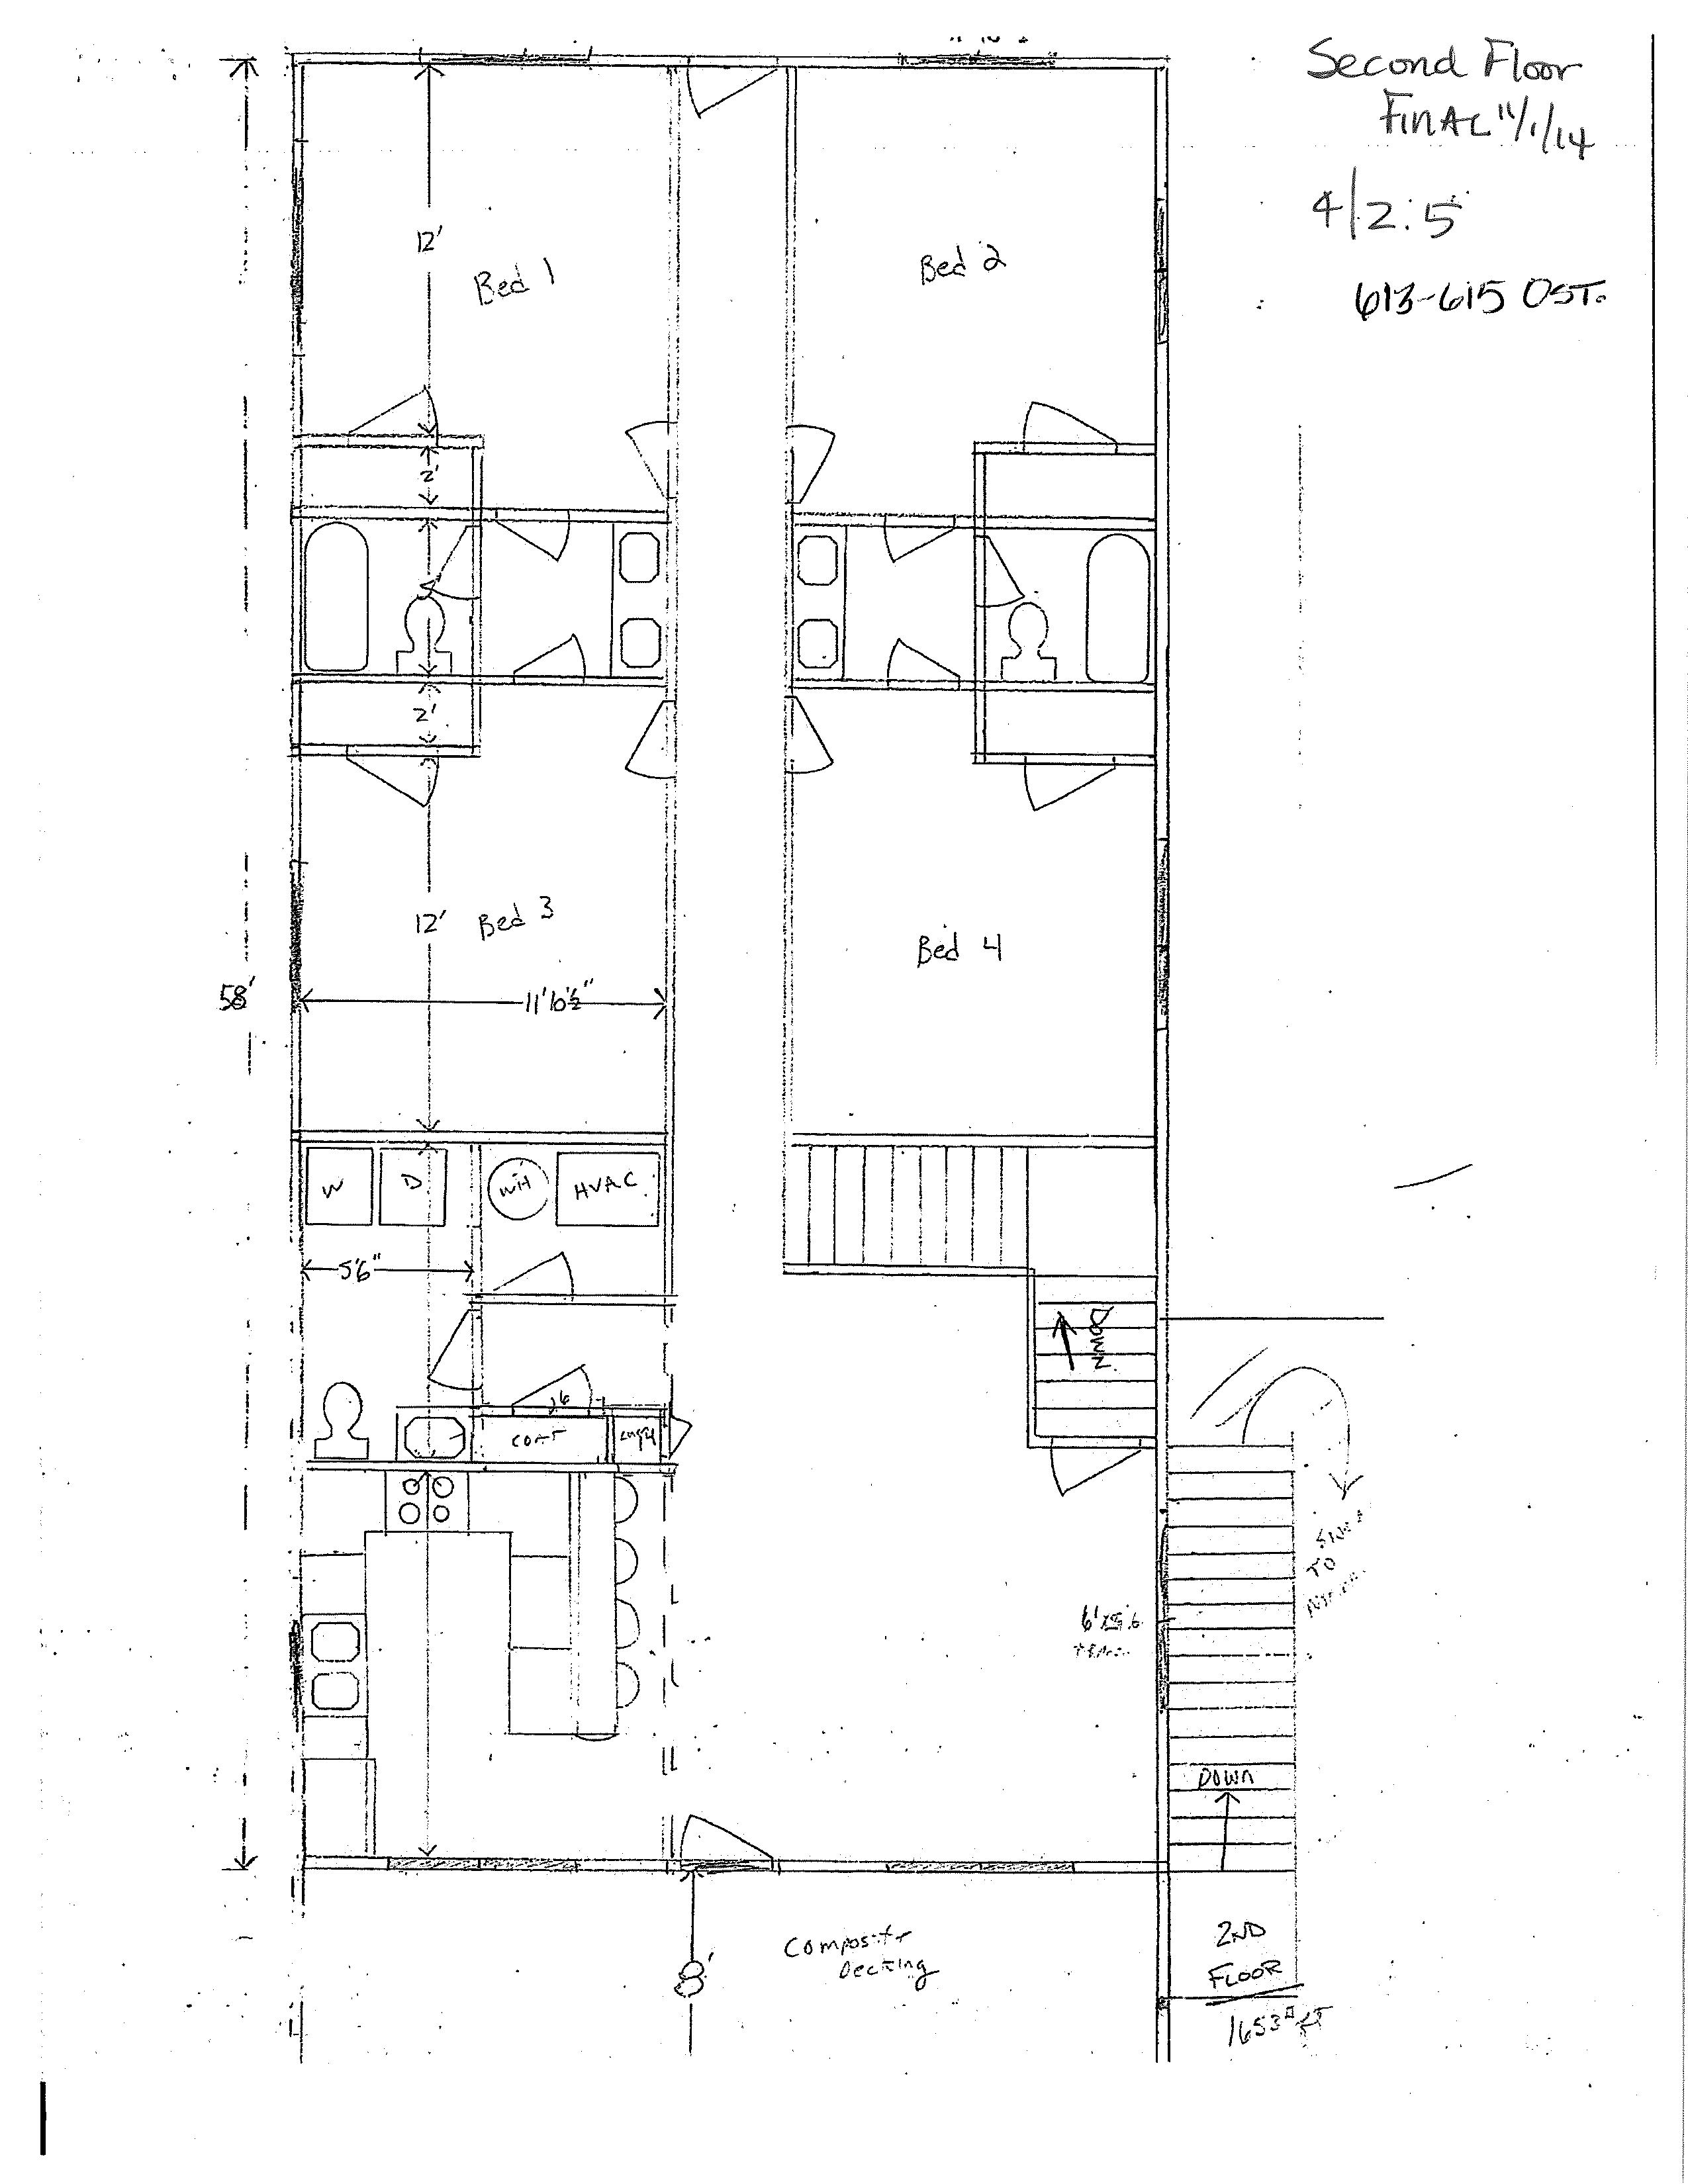 810 W. Normal Floor Plan